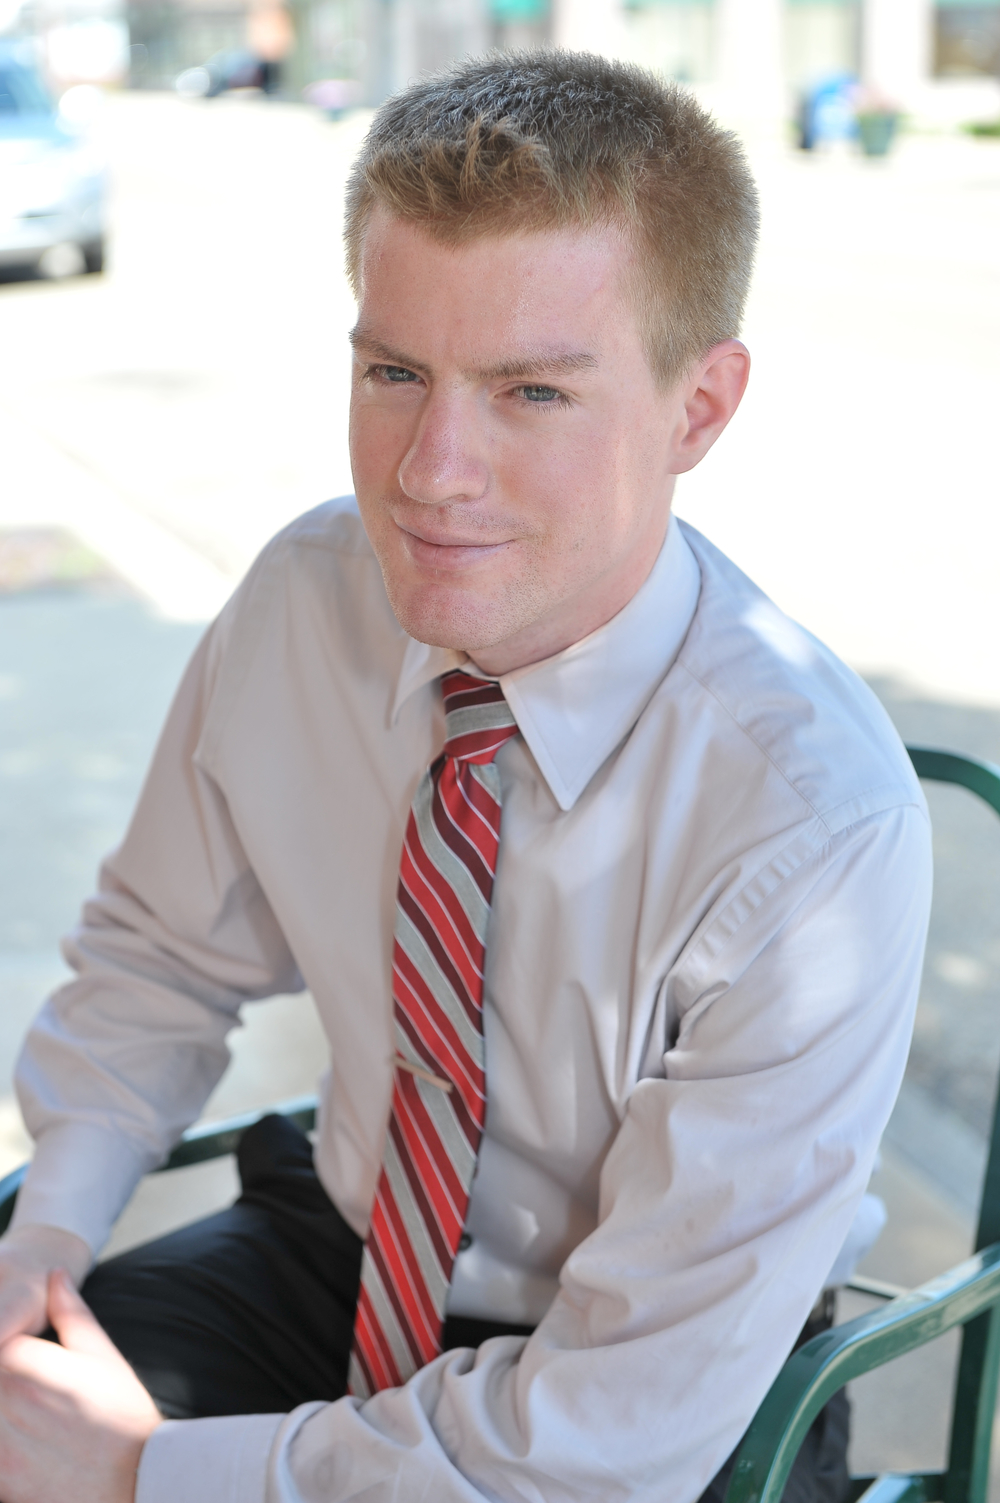 Sam Stuckel Administrative Manager